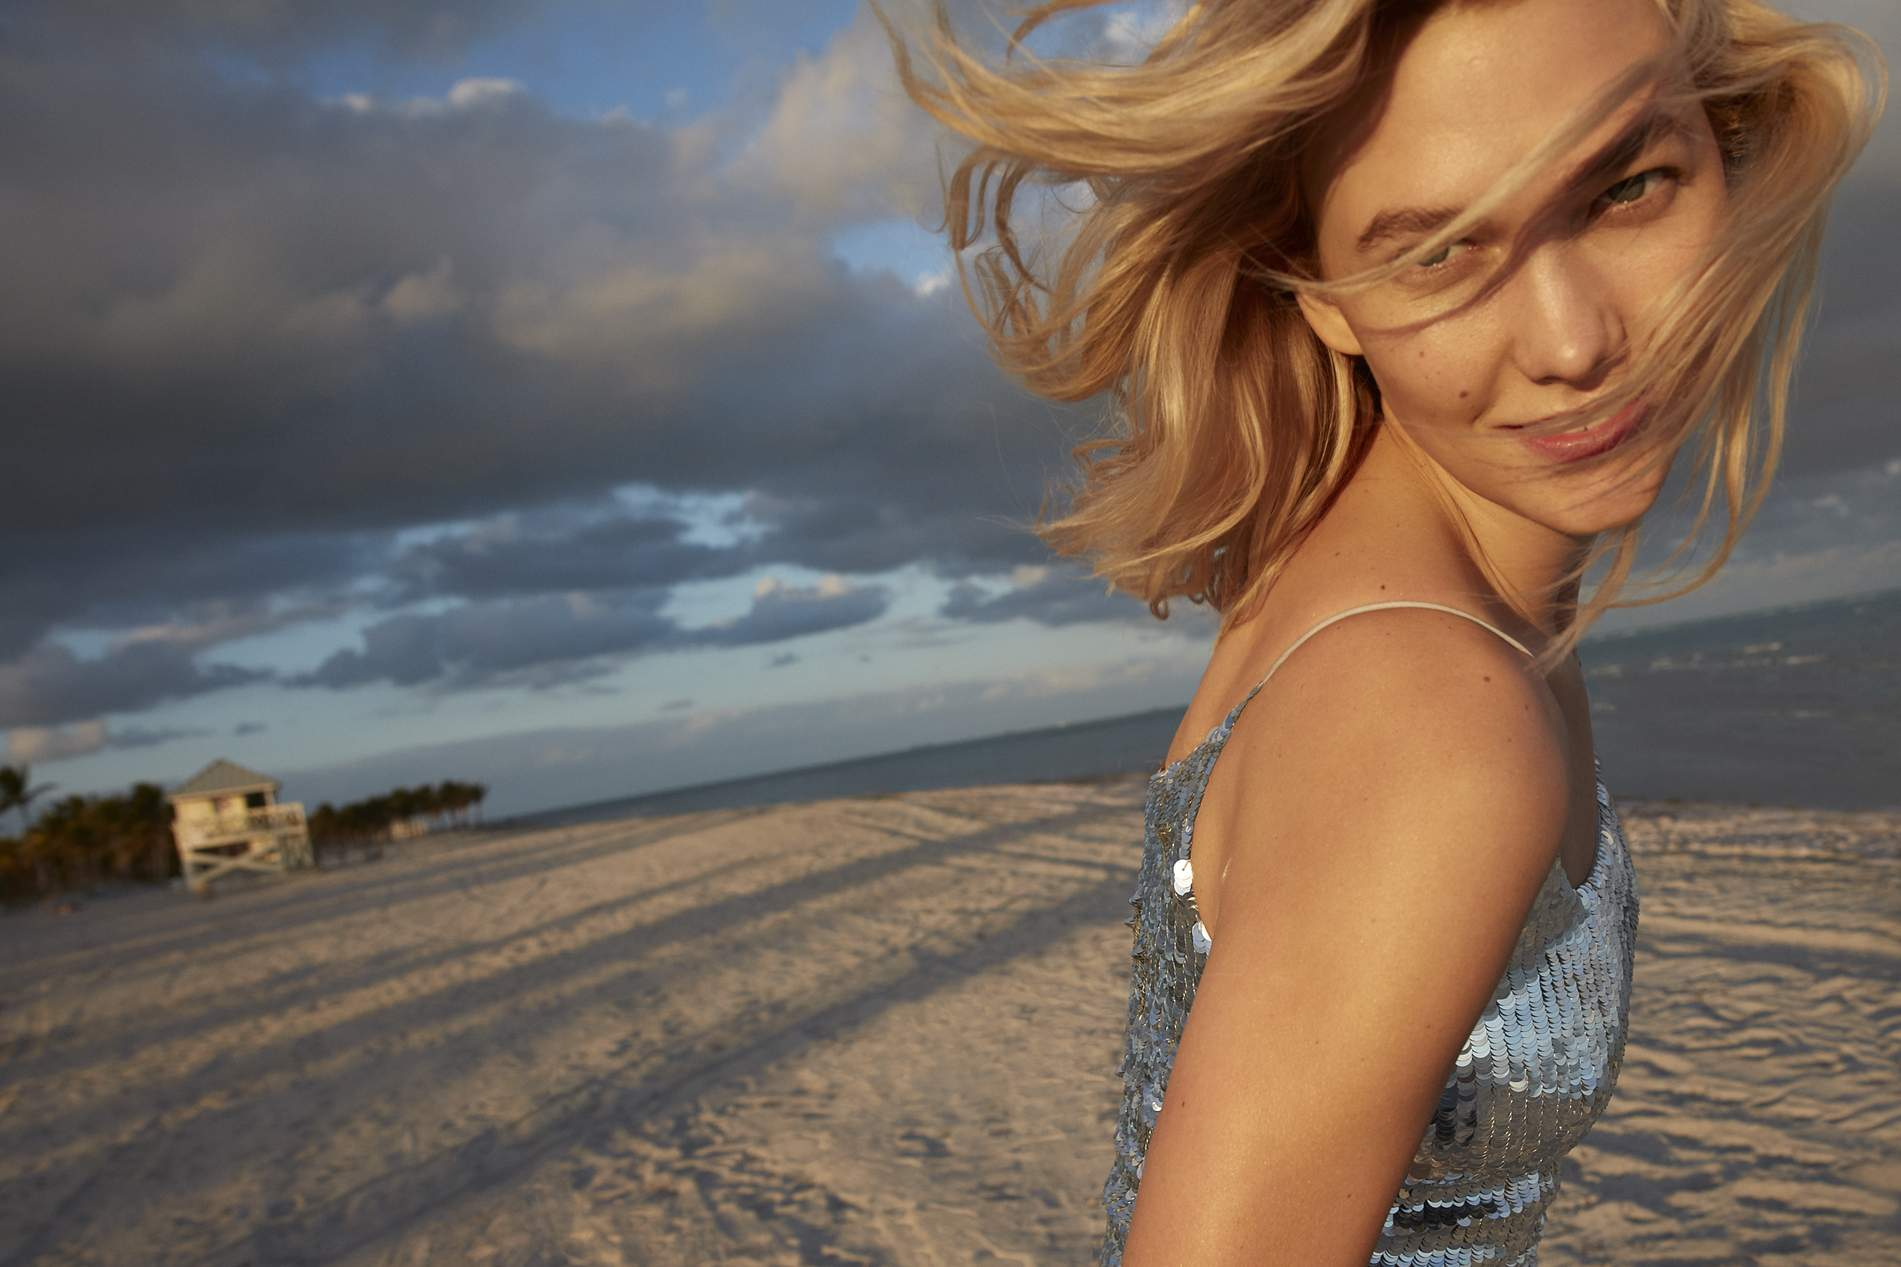 1cb6b66f864d Supermodel Karlie Kloss On Being A Tech Entrepreneur And Championing ...